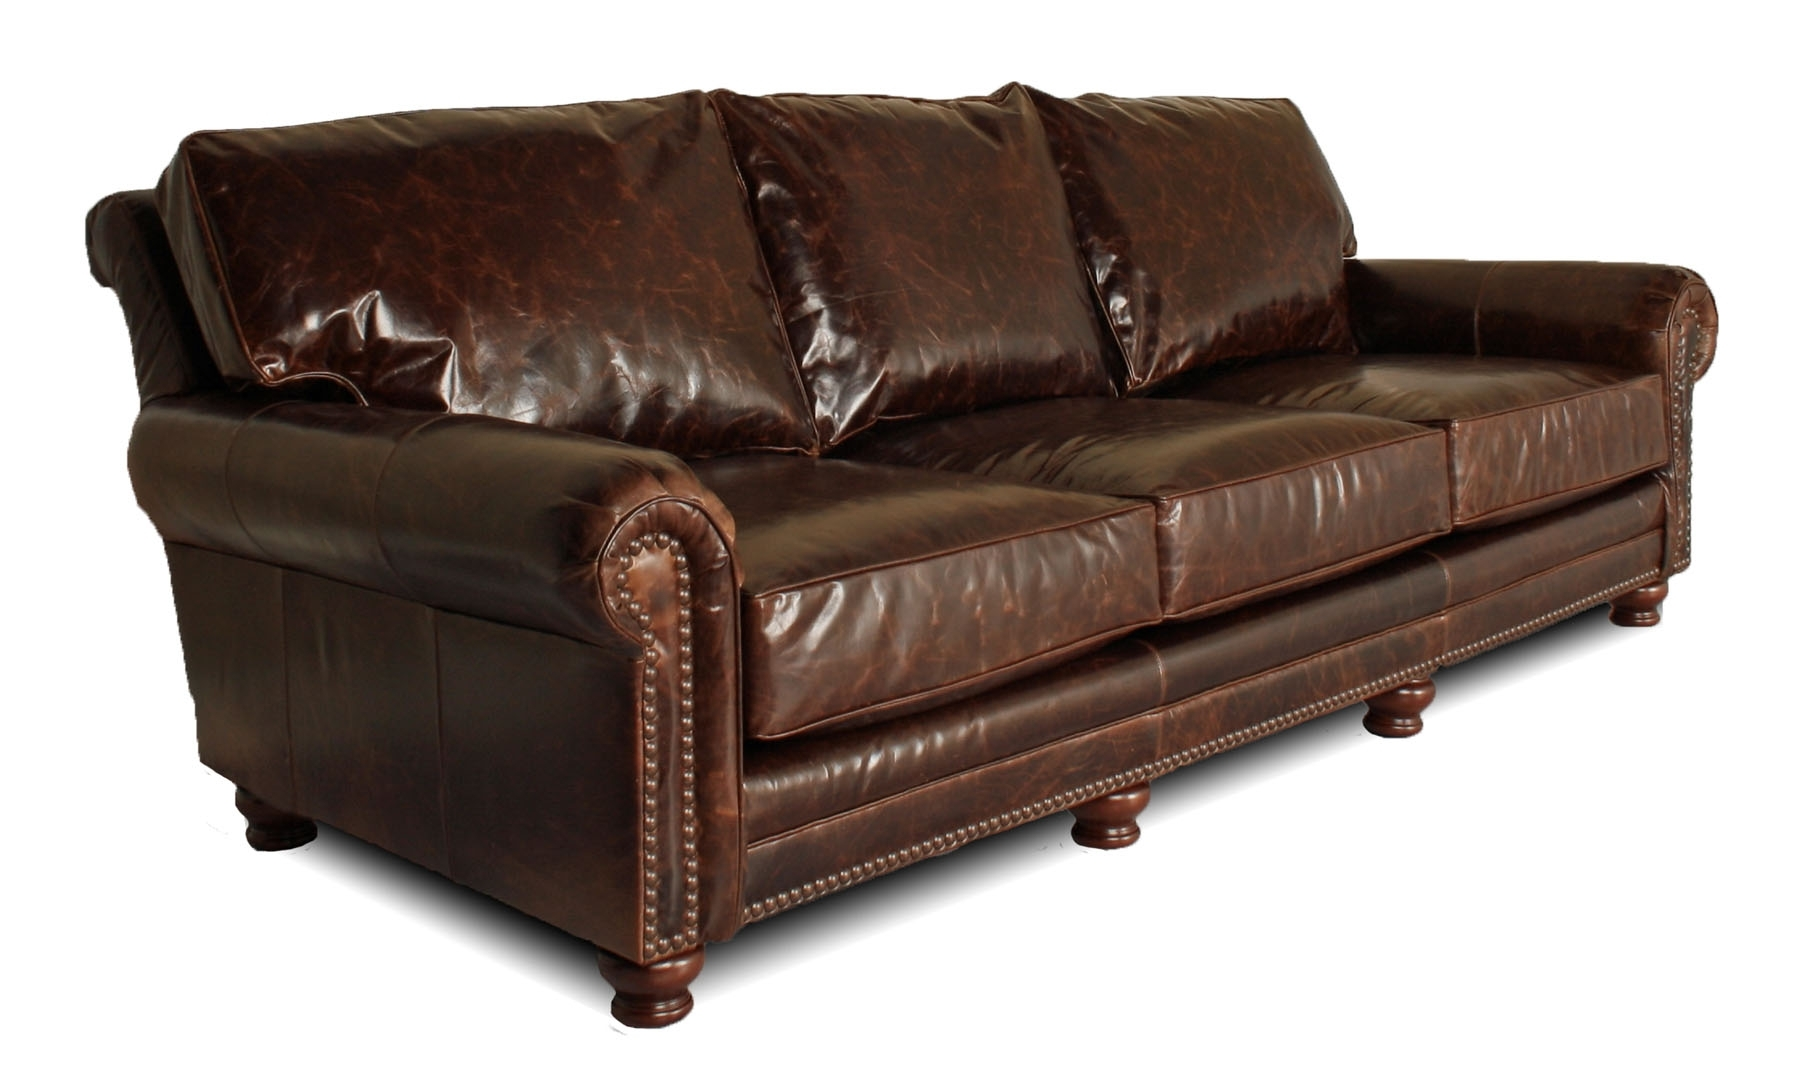 Well Liked Kingston Sectional Sofas For Deep Leather Furniture For The Big & Tall, Atlanta, Austin,chicago (View 18 of 20)